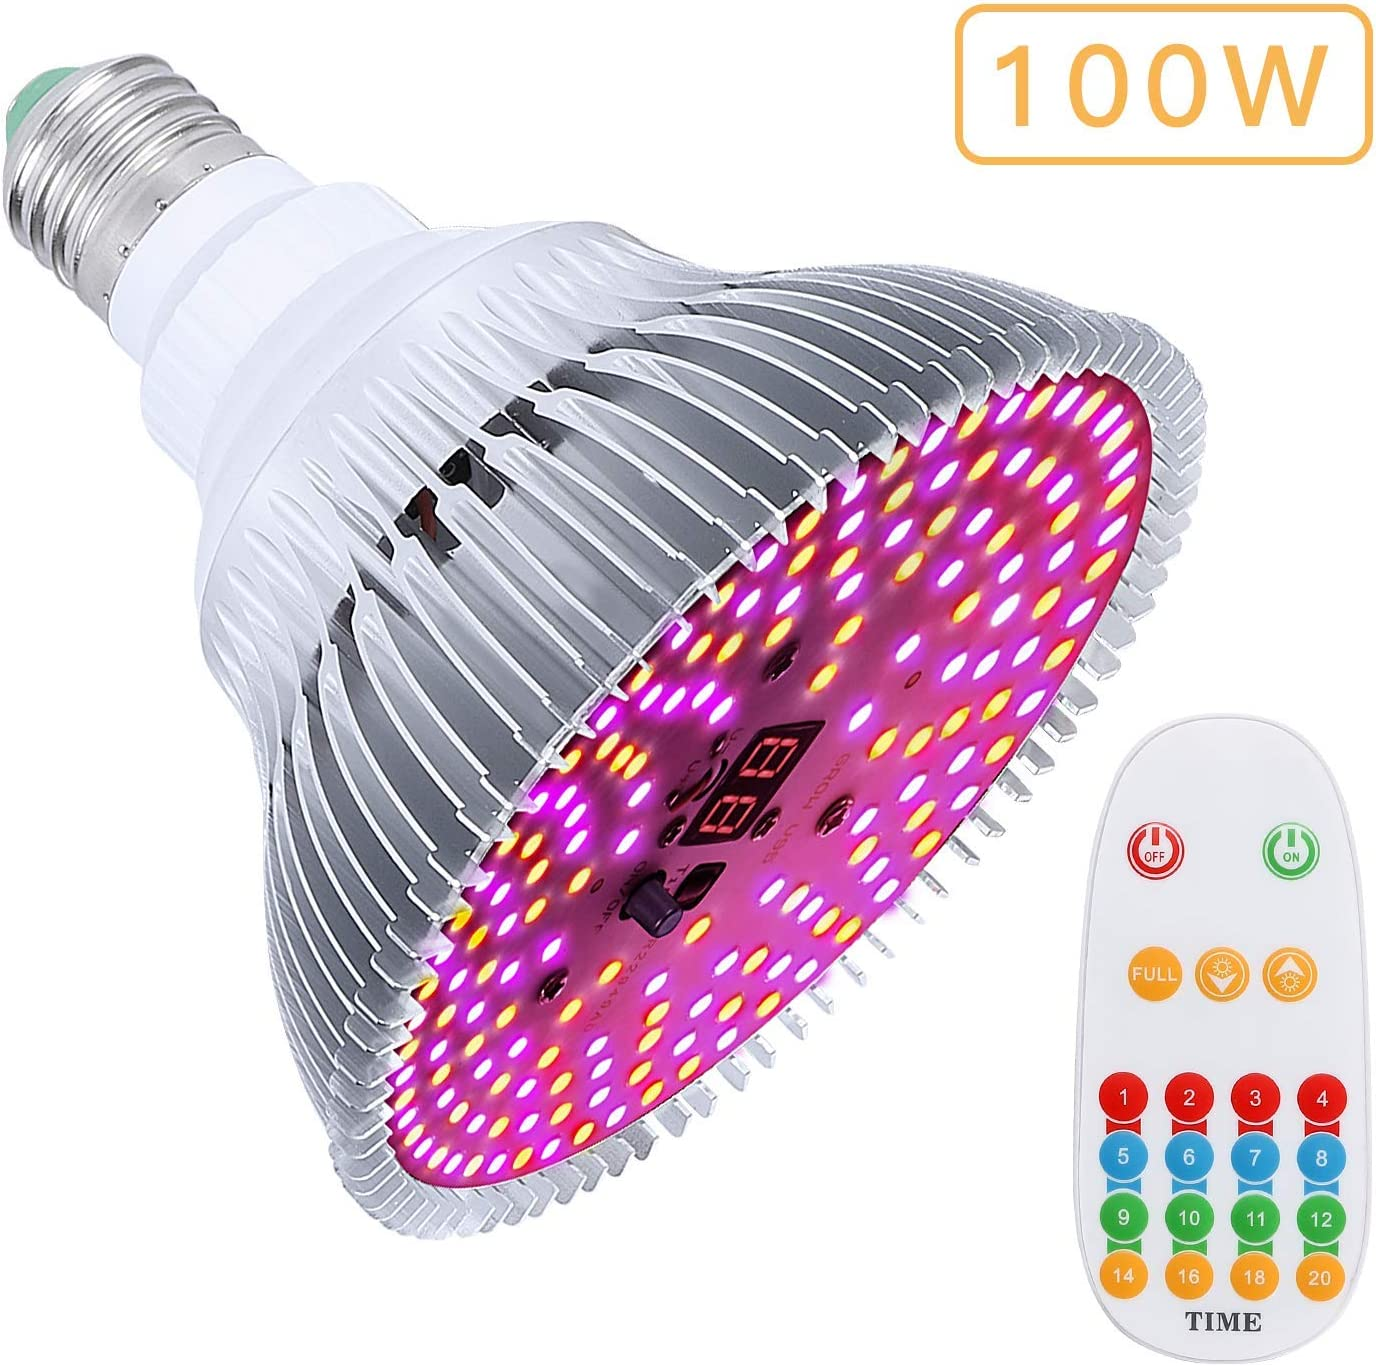 Grow Light Bulb,100W grow lights for indoor plants full spectrum with Auto On/Off Timer Brightness Settings for Indoor Plants Vegetables,Seedlings,Hydroponics Indoor Garden Greenhouse(E26/E27 160LEDS)